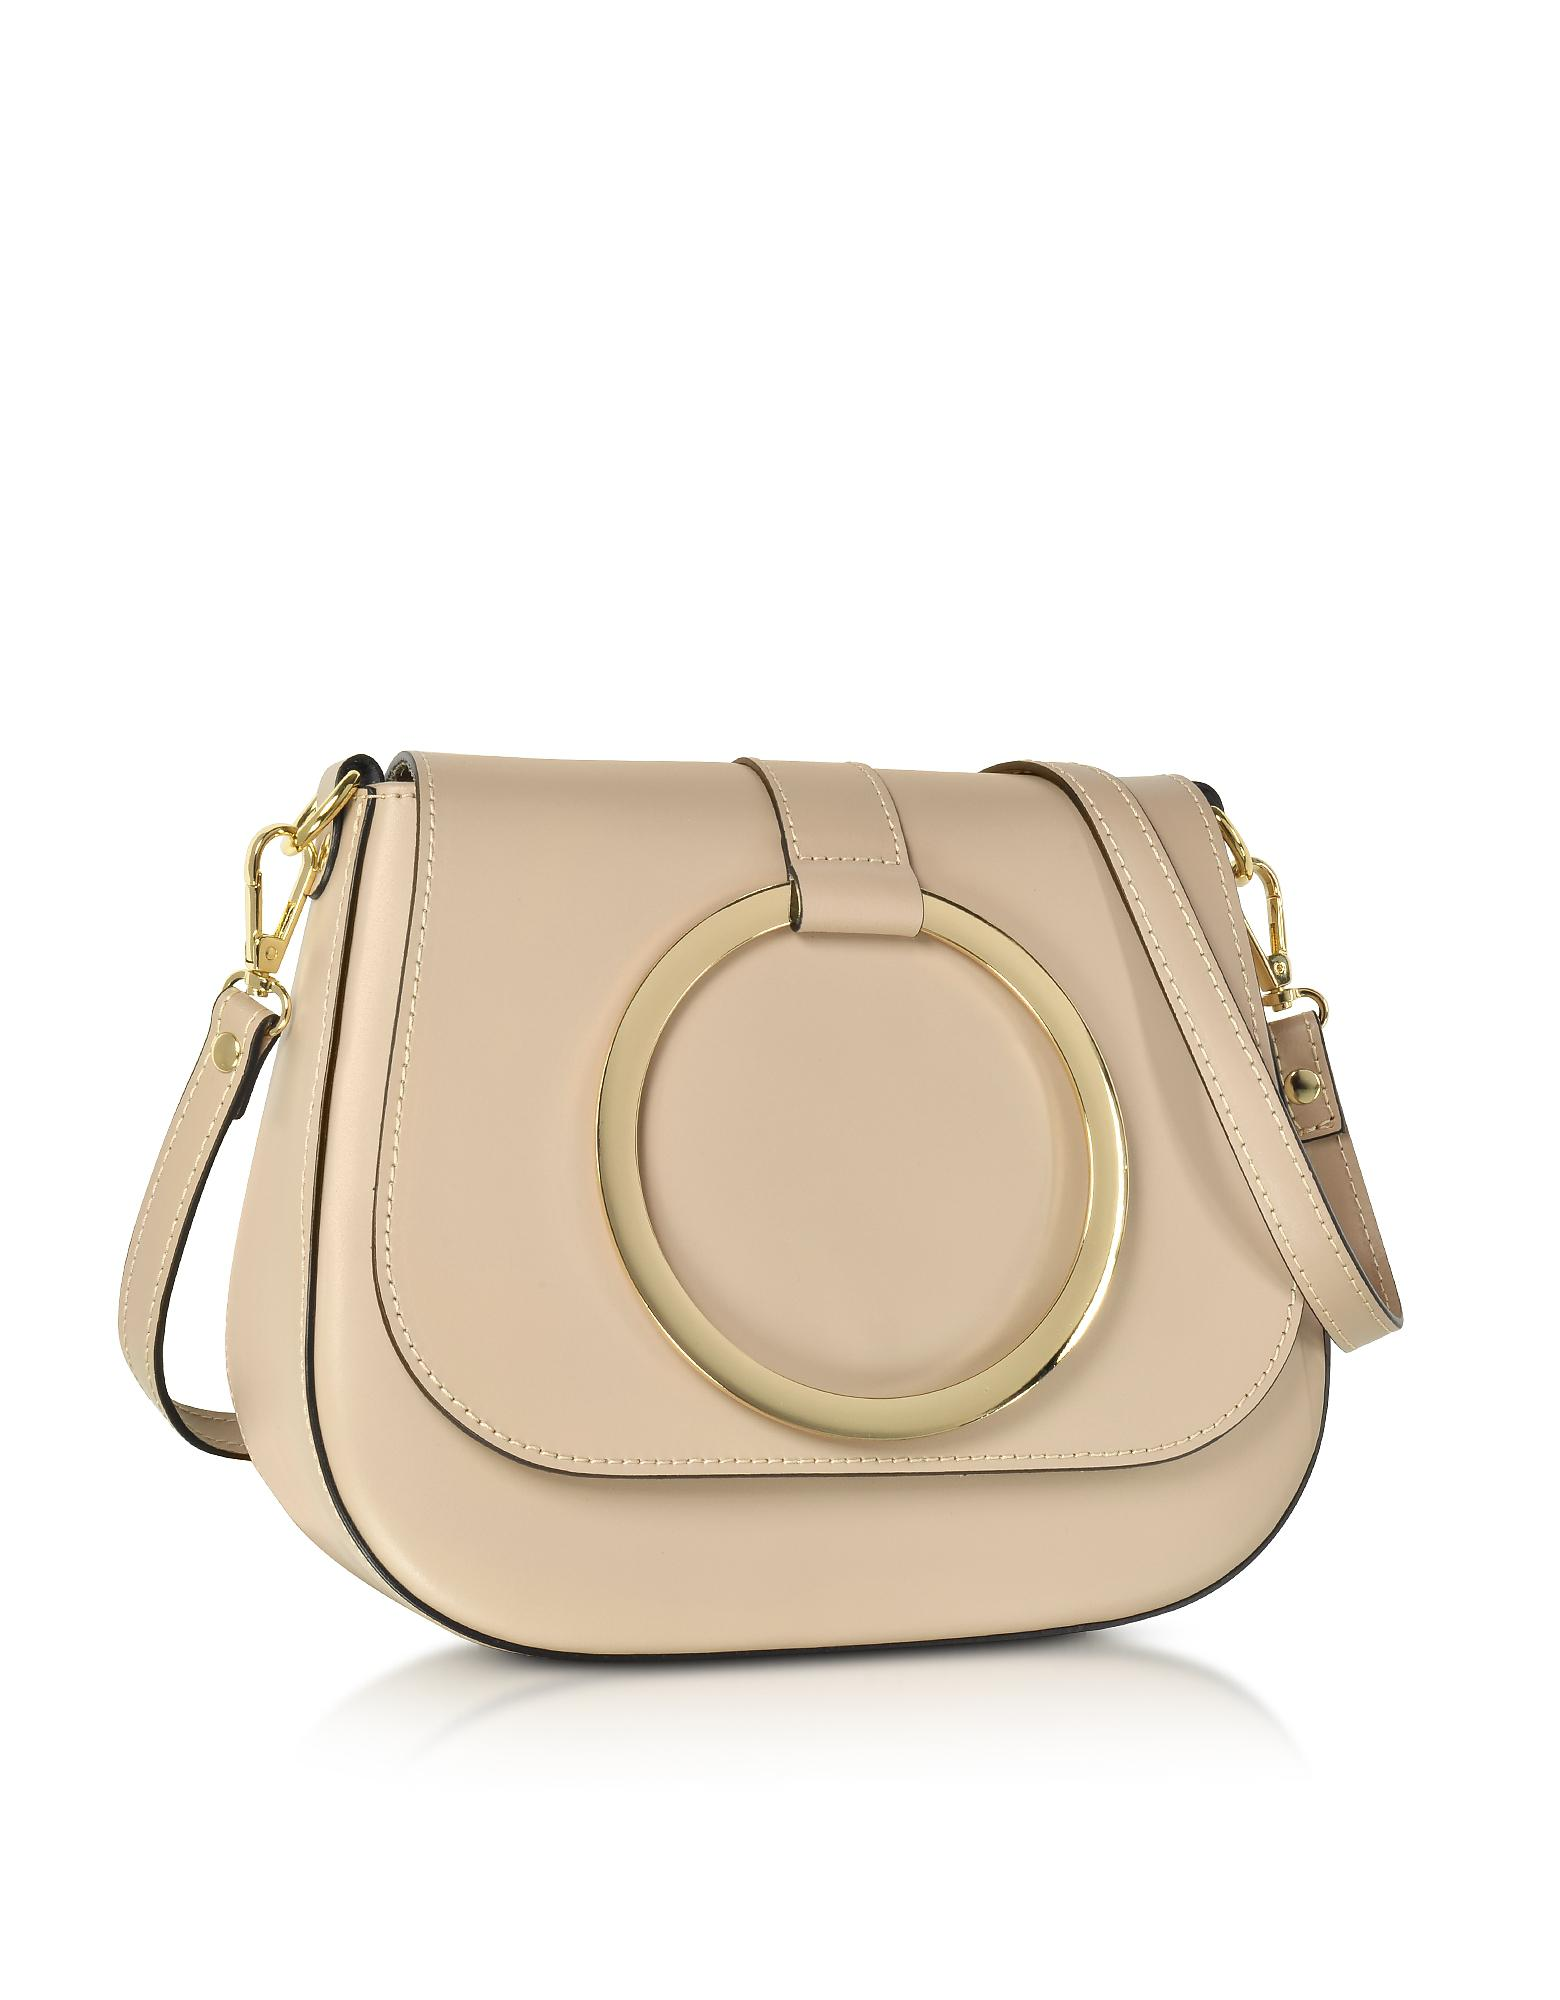 6d7b9b96eed Le Parmentier Nude Smooth Leather Shoulder Bag in Natural - Save  2.6455026455026456% - Lyst